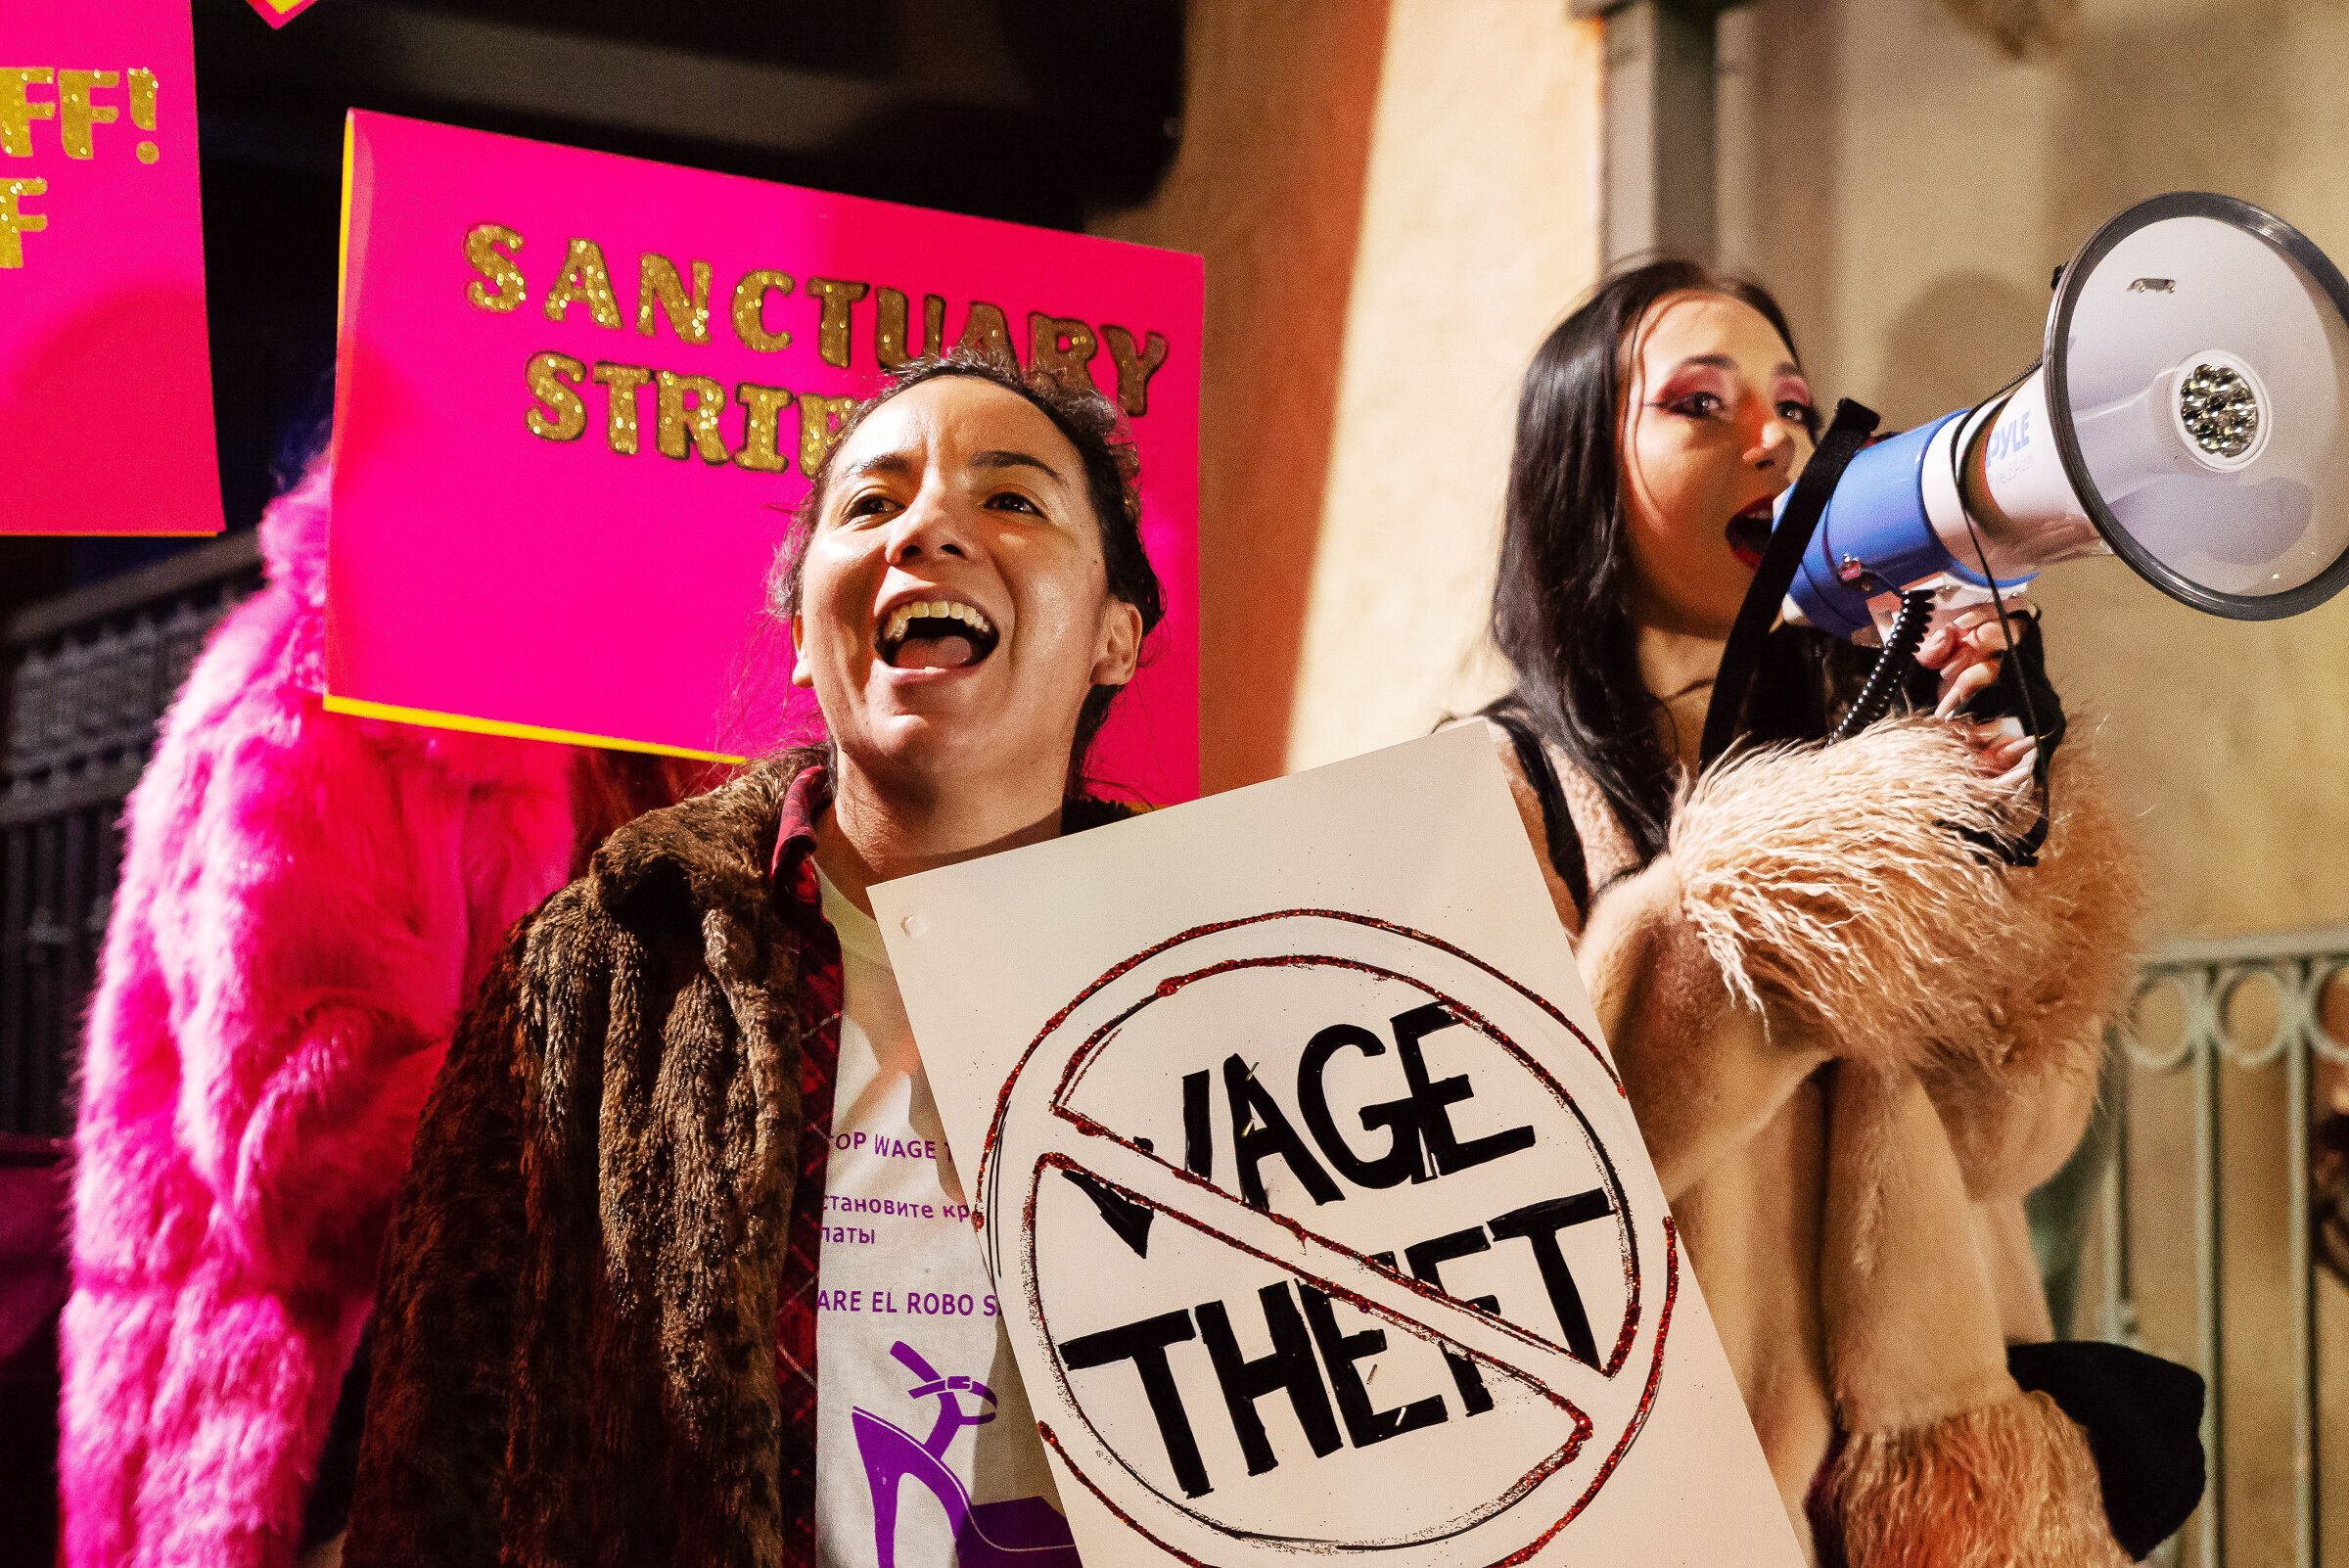 Exotic dancers protest in front of Crazy Girls strip club in Los Angeles on February 22, 2019.